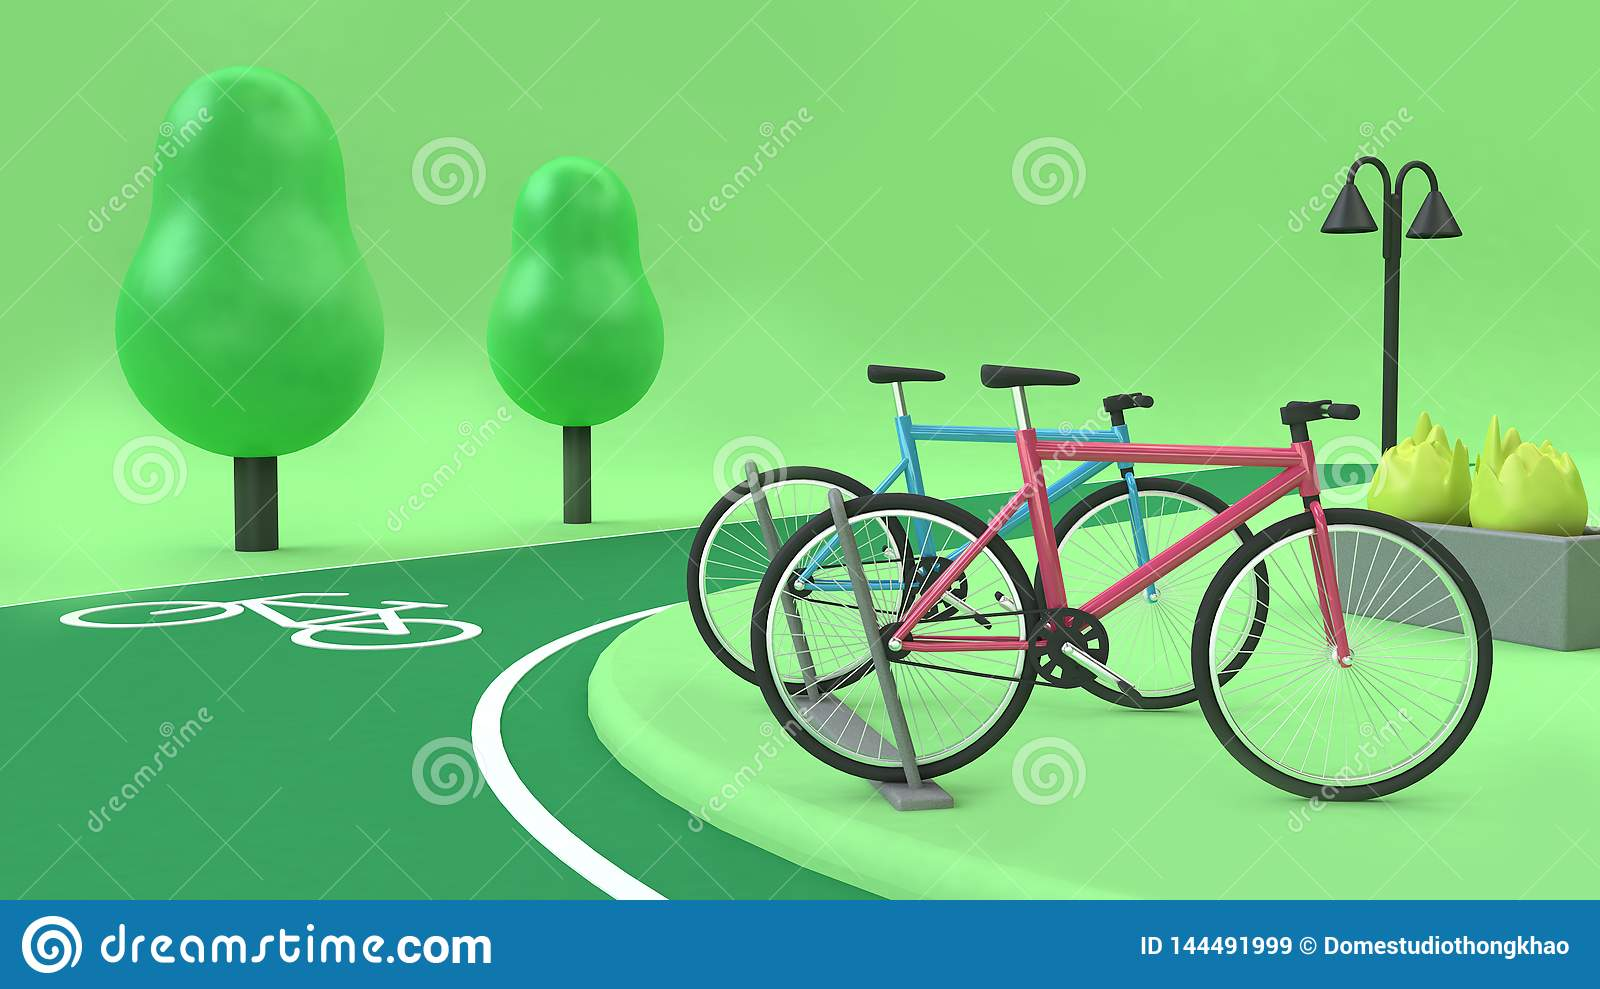 Bike station with bike lane green parks 3d low poly trees 3d rendering cartoon style,transportation nature